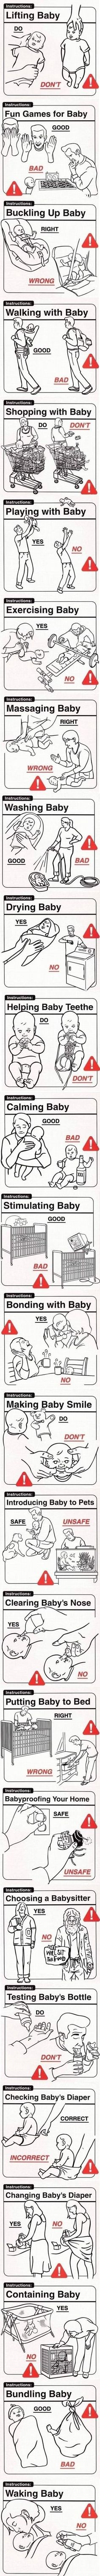 Im gonna print this for friends who have babies soon!